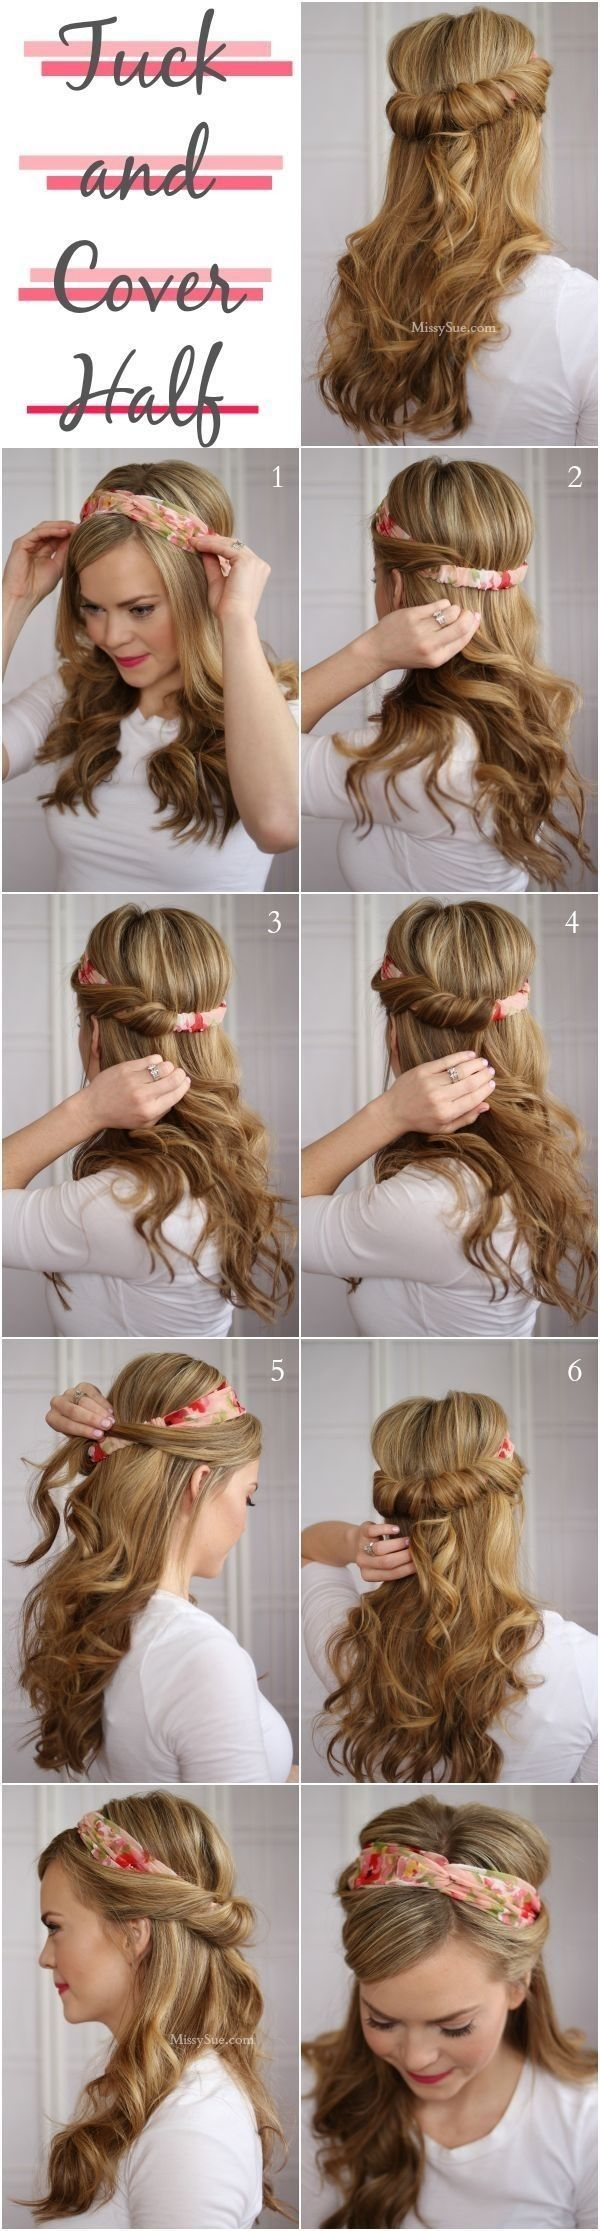 Quick easy and elegant hairstyles for when your pressed for time